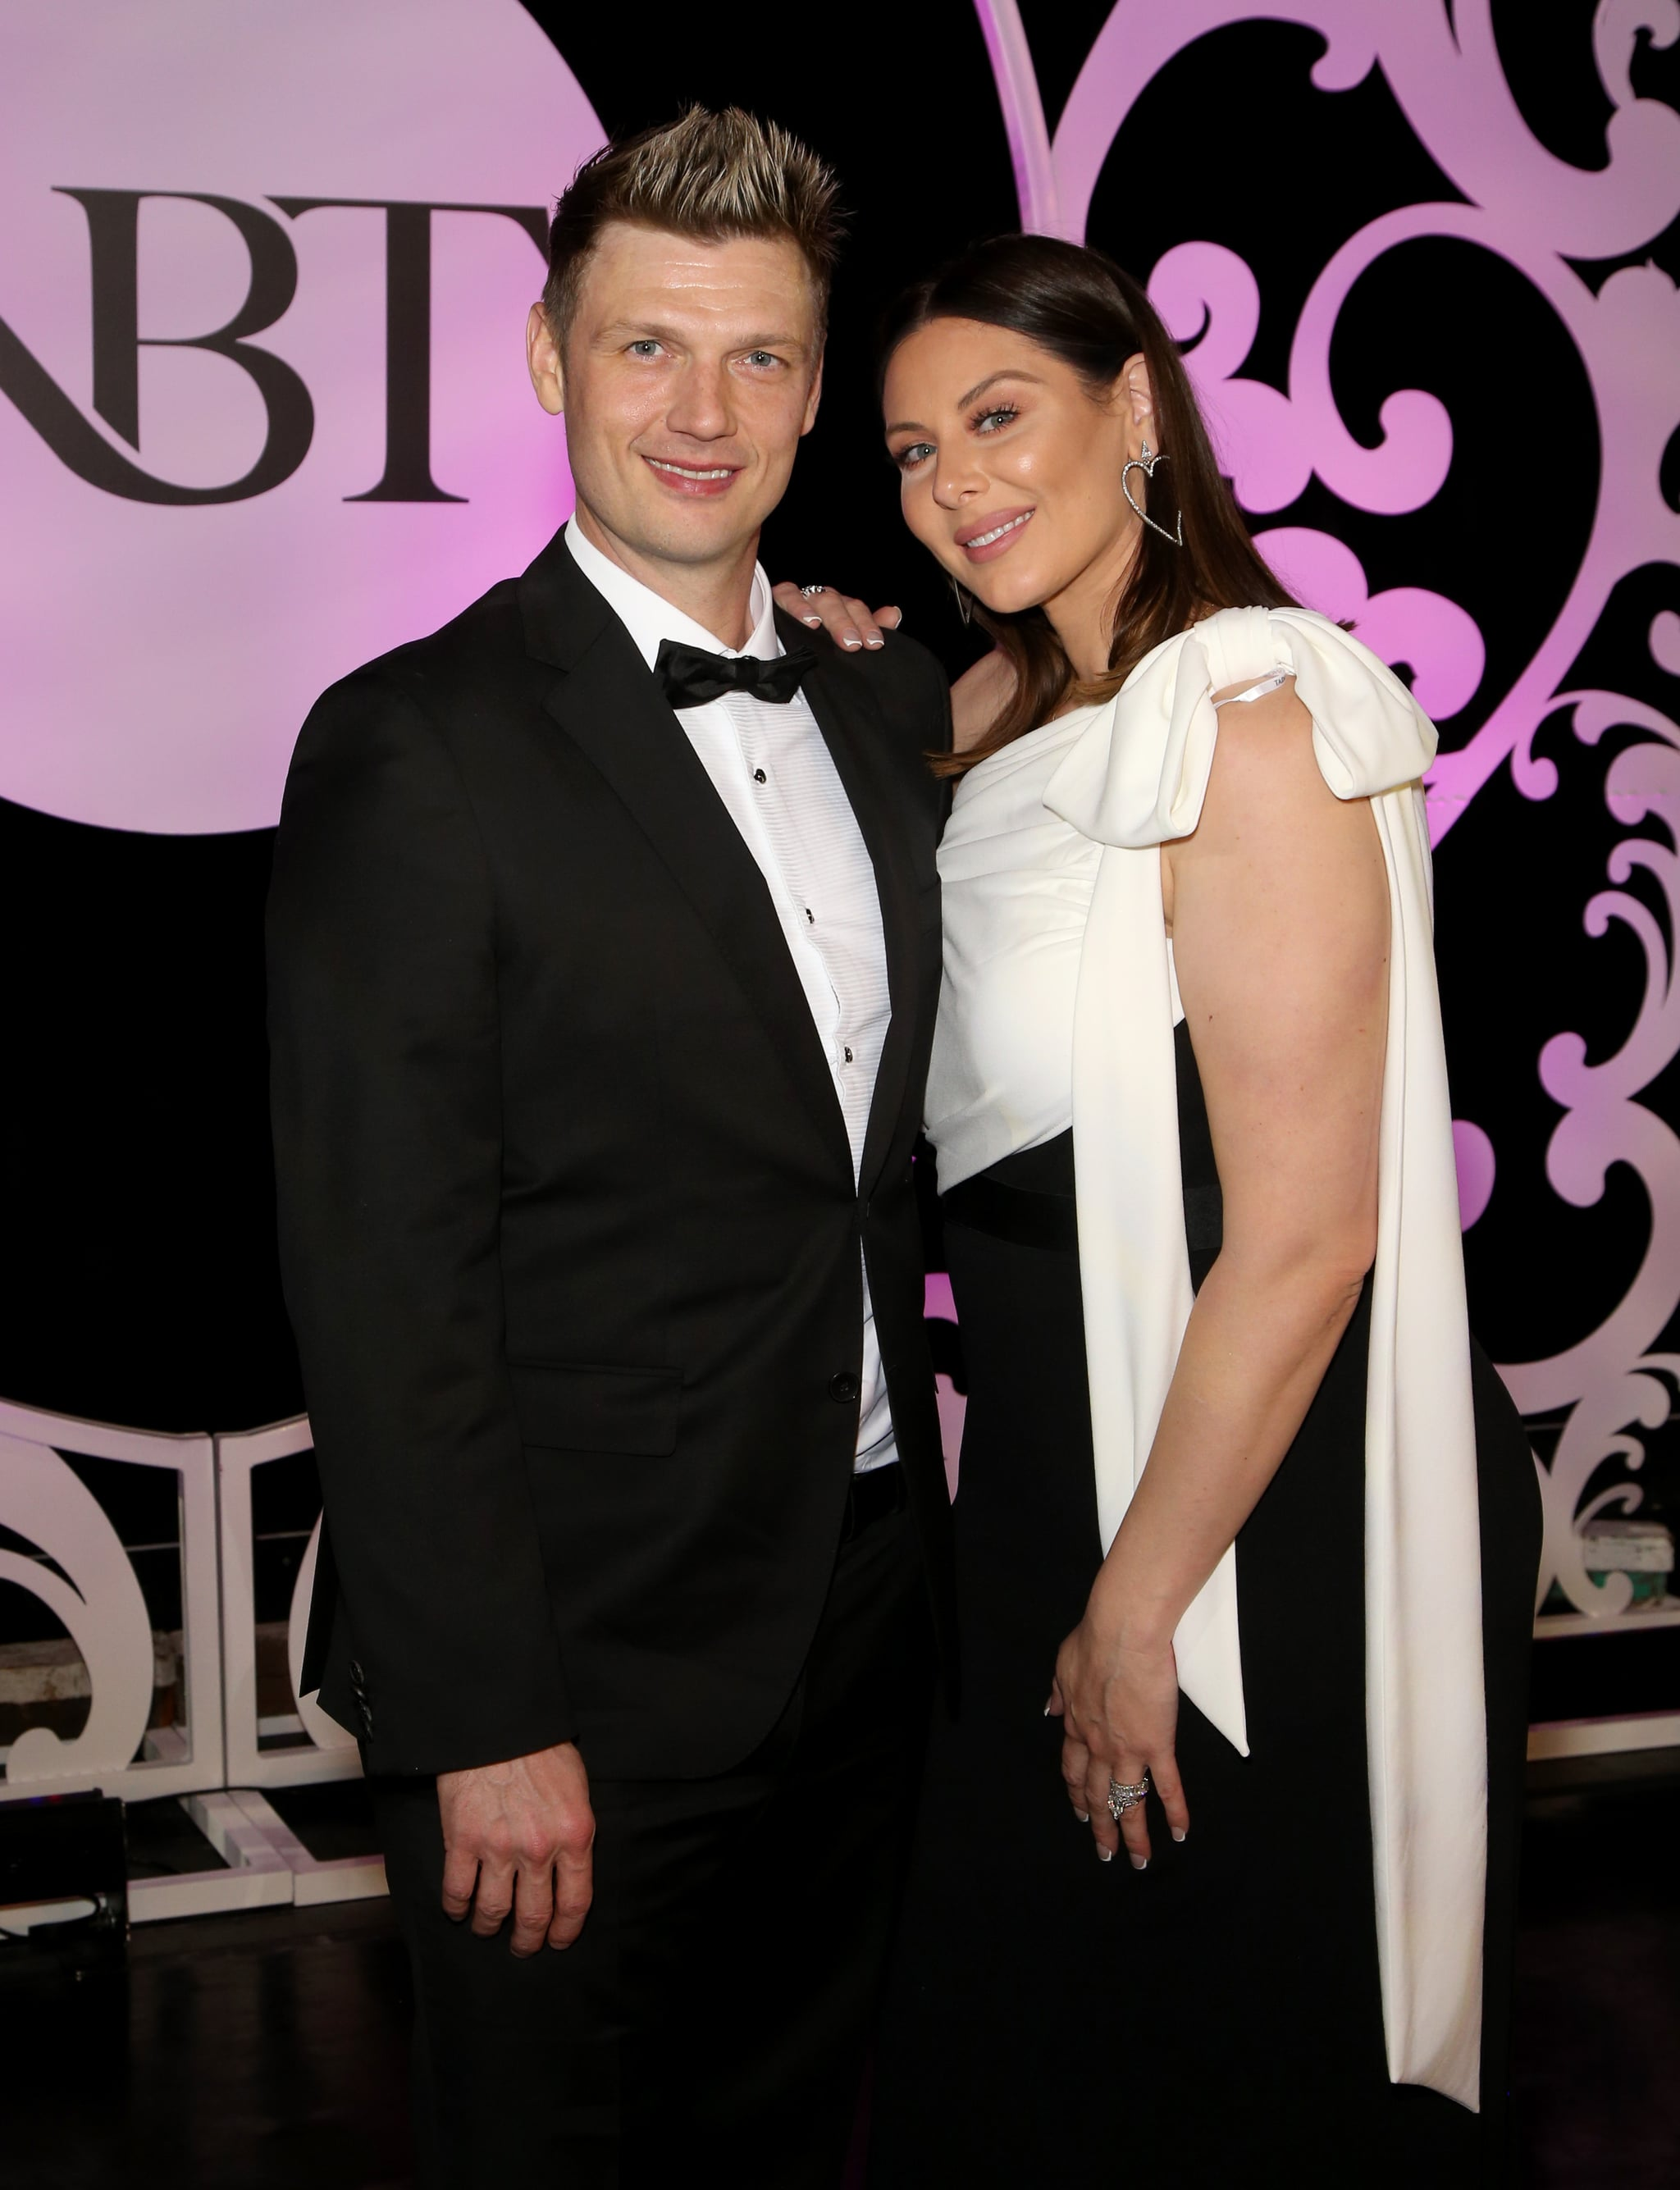 LAS VEGAS, NEVADA - JANUARY 25:  Singer Nick Carter (L) of Backstreet Boys and his wife Lauren Carter attend the 36th annual Black and White Ball honoring Nevada Ballet Theatre's 2020 Woman of the Year event at Caesars Palace on January 25, 2020 in Las Vegas, Nevada. (Photo by Gabe Ginsberg/Getty Images)